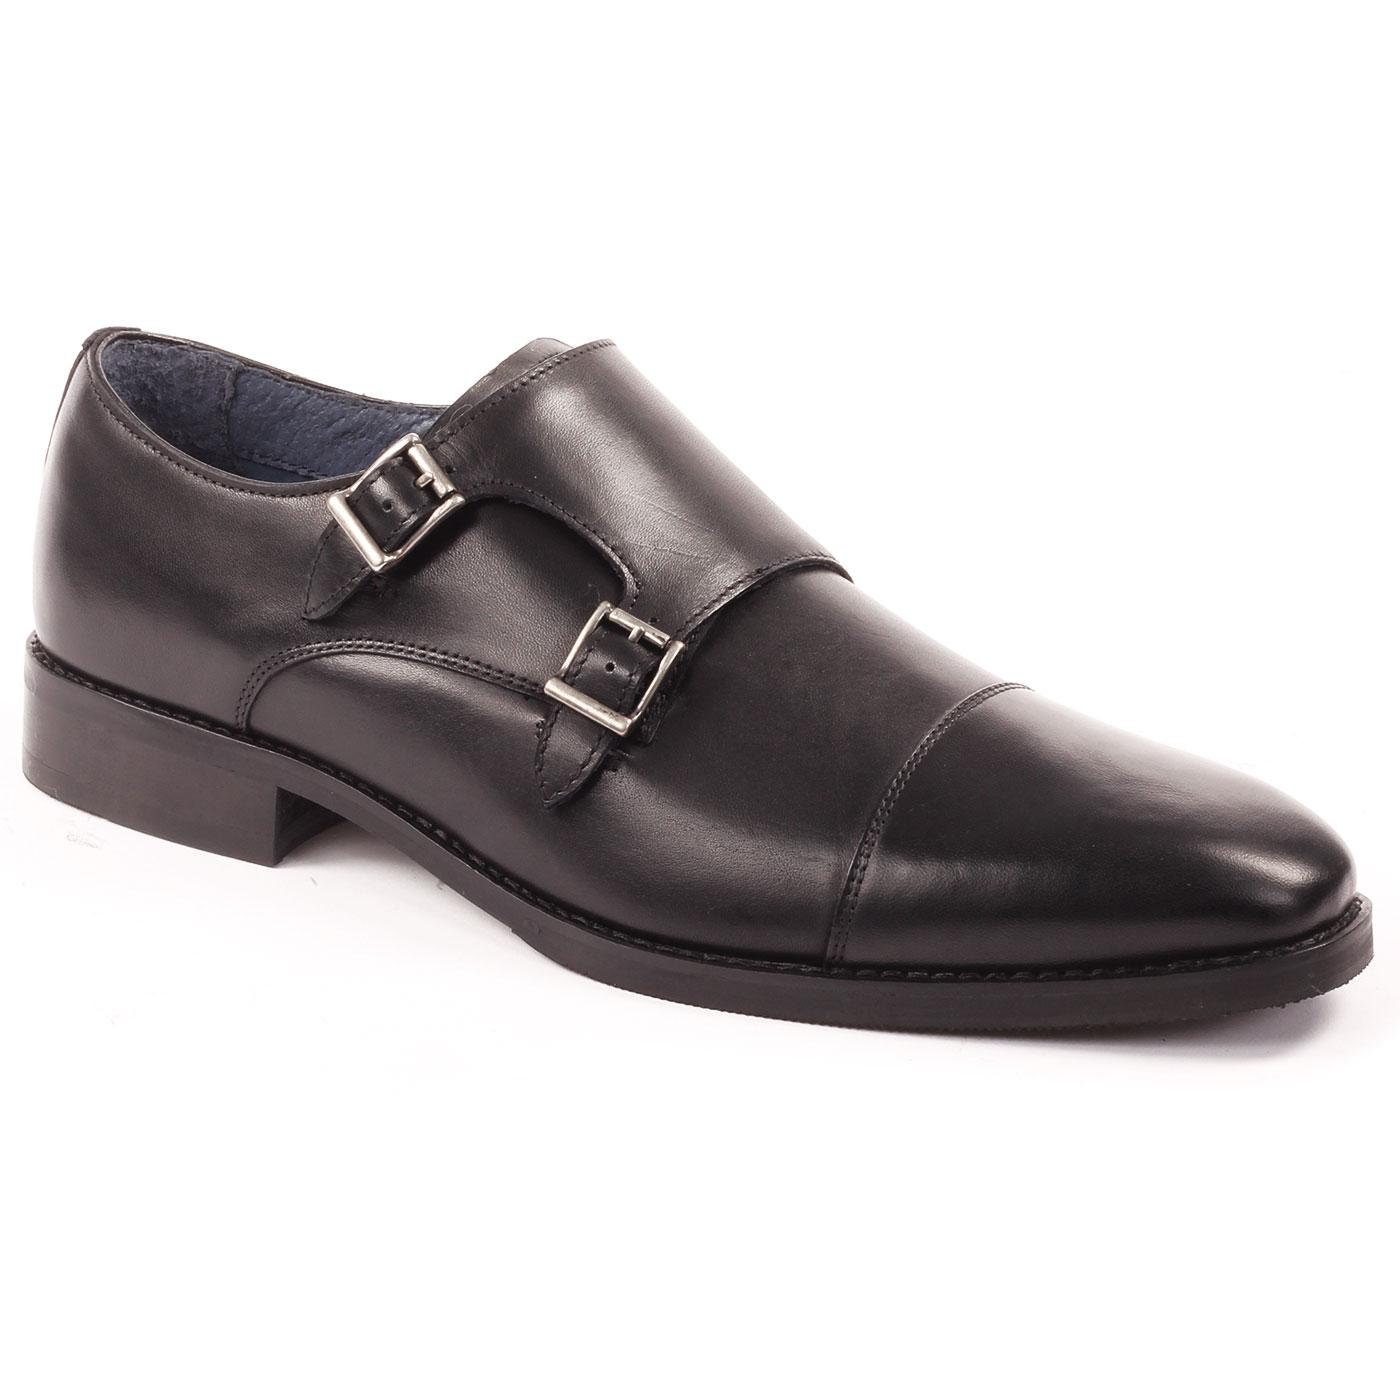 Ellington PAOLO VANDINI Mod Leather Monk Shoes